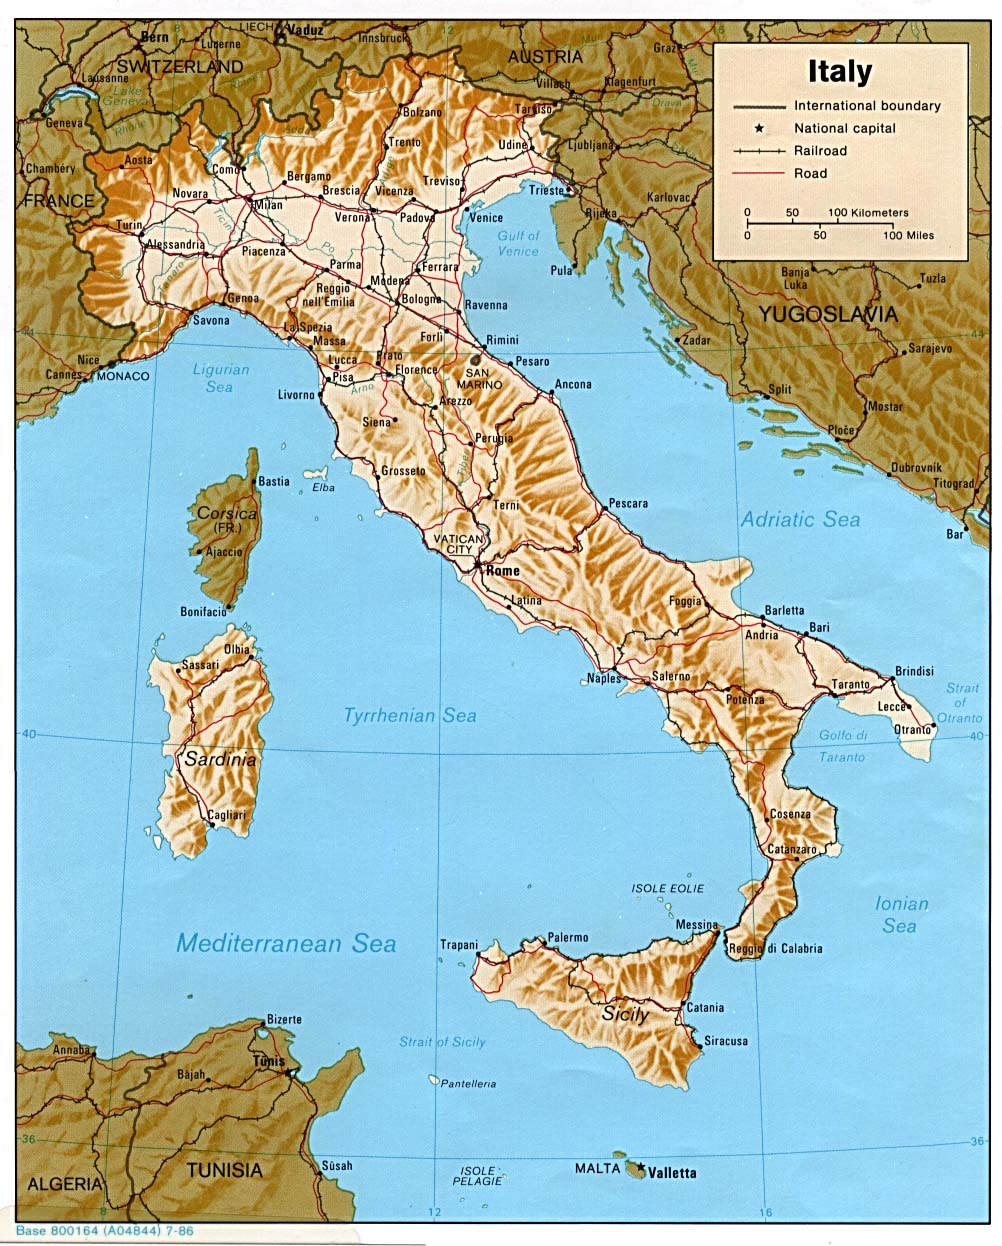 Army Issue Maps of the Italian Campaign